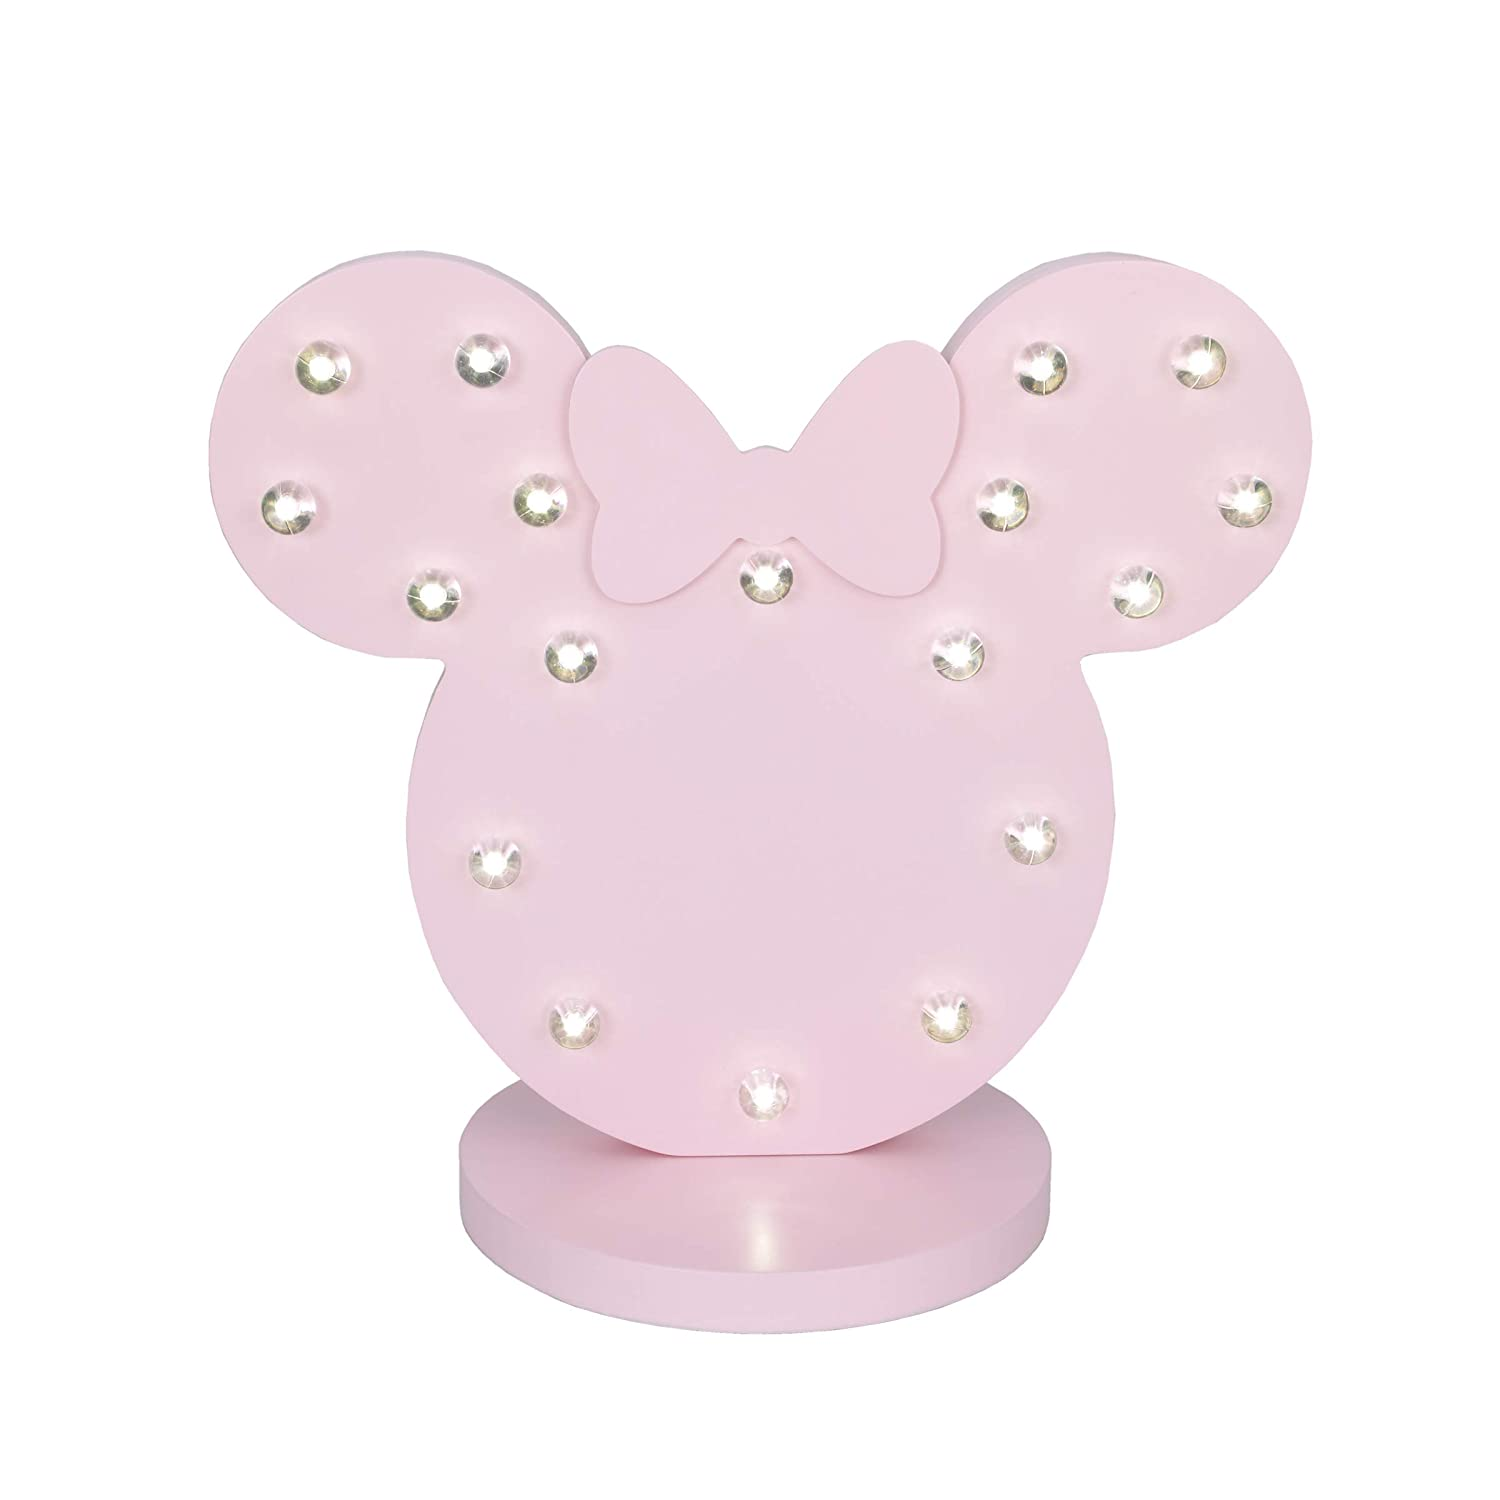 Disney Minnie Mouse Standing Marquee Lighted Room Decor with 3D Bow, Pink